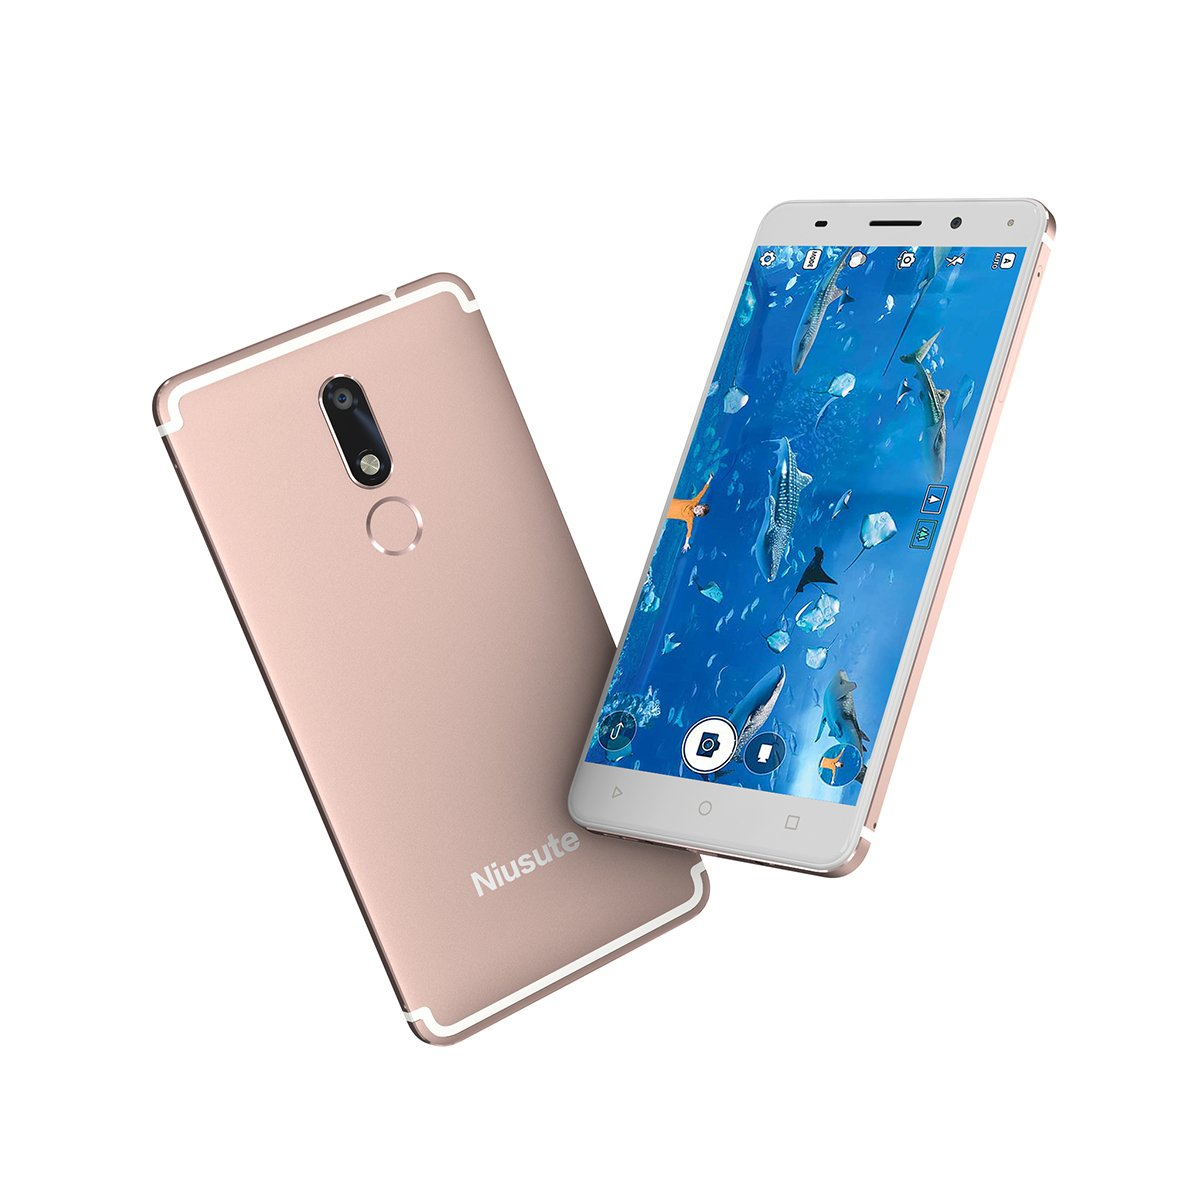 5.5'' 4G FDD-LTE Unlocked Smartphones 2GB/16GB Android 7.0 High-definition camera (13MP+5MP) Nougat with Fingerprint Cellphone Unlocked Gold By Niusute